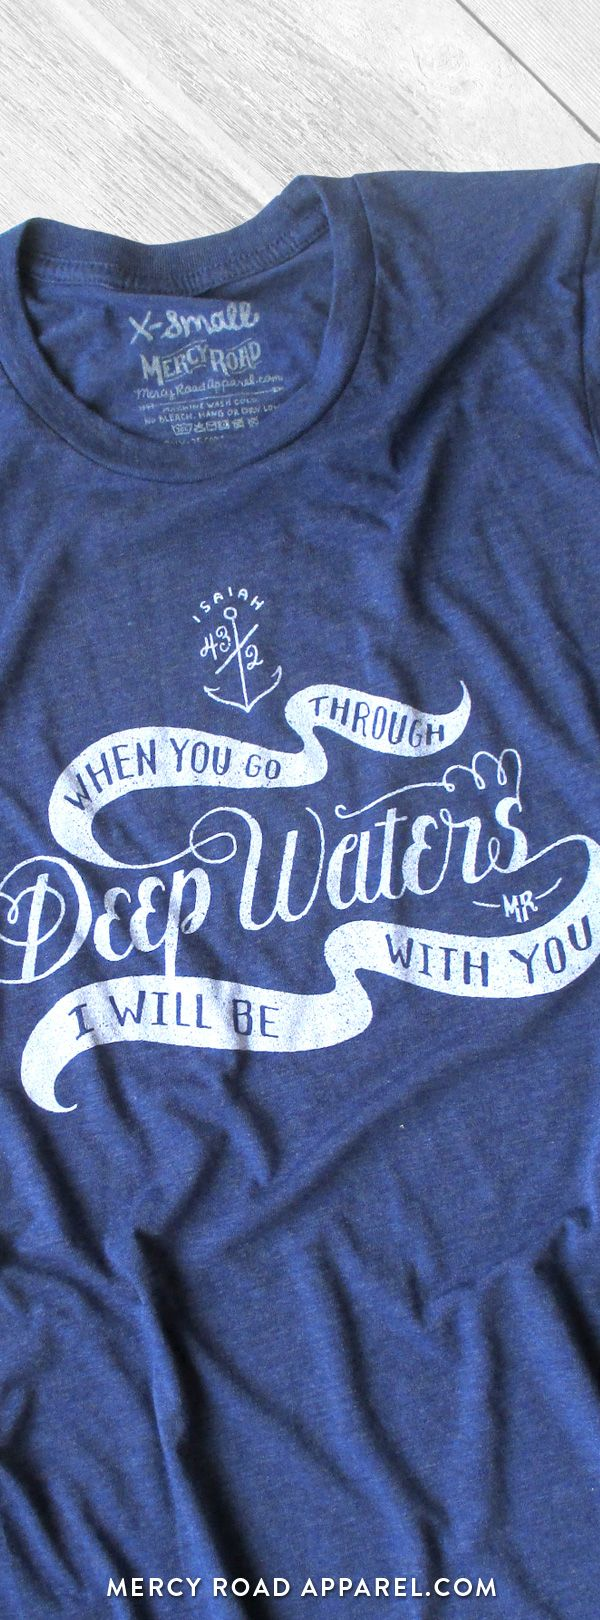 "Nautical Christian T-Shirt with Isaiah 43:2 ""When you go through deep waters, I will be with you"". this scripture shirt is handcrafted and screenprinted on a gloriously comfy navy blue triblend tee. Quality Christian clothing for women and men. FREE SHIPPING USA.  Shop >> MercyRoadApparel.com. This design is copyrighted ©2017MercyRoadApparel"